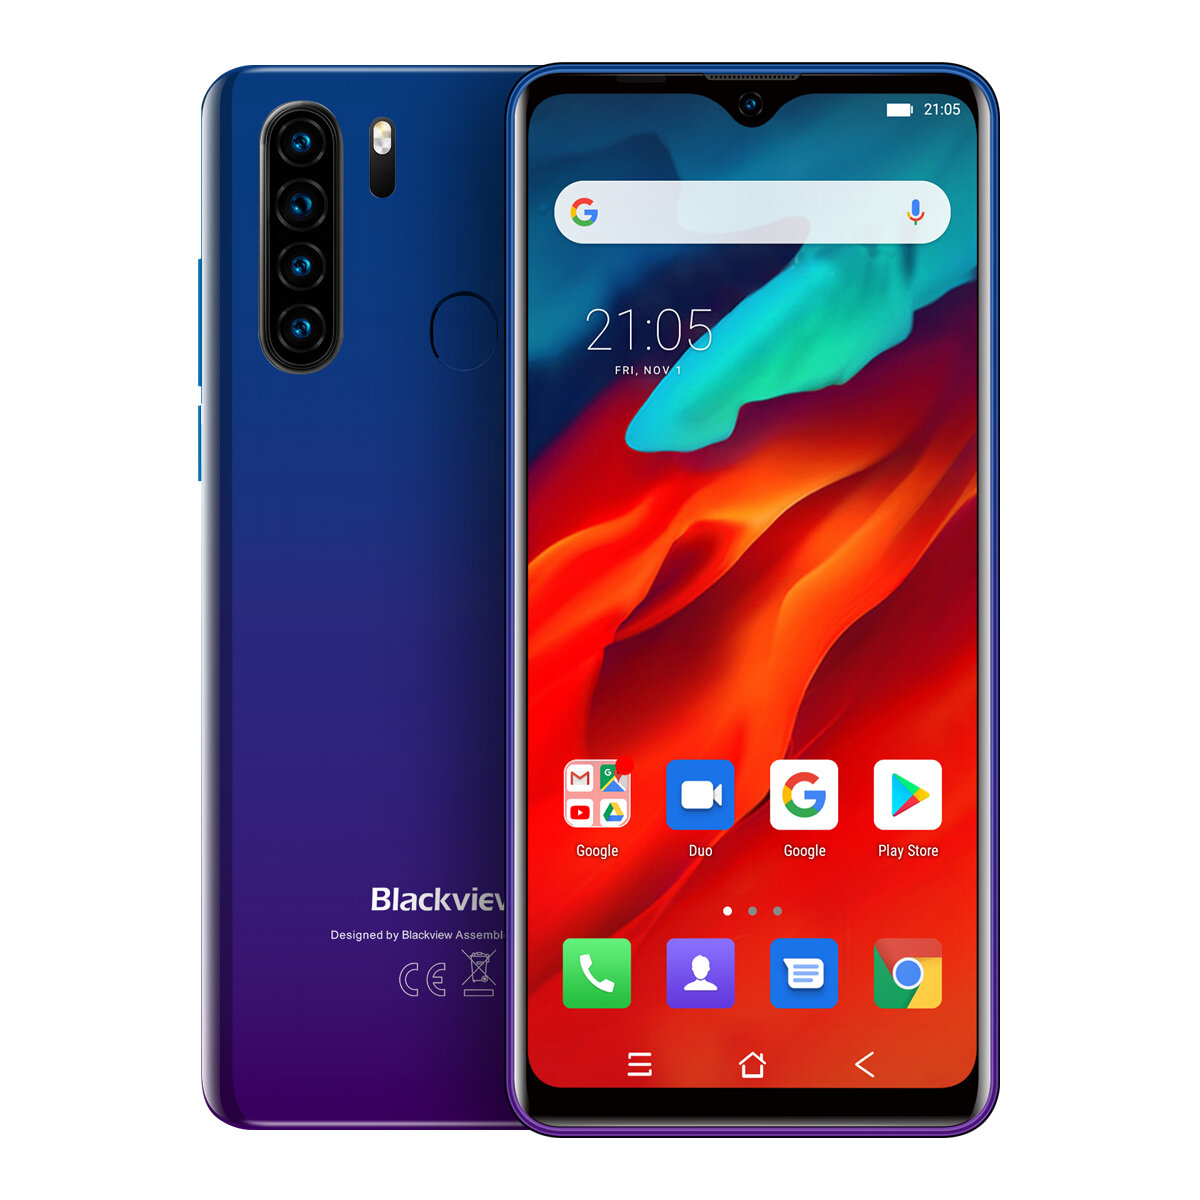 Blackview A80 Pro Global Bands 6.49 inch HD+ Waterdrop Display 4200mAh Android 9.0 13MP Quad Rear Camera 4GB 64GB Helio P25 Octa Core 4G Smartphone - Blue